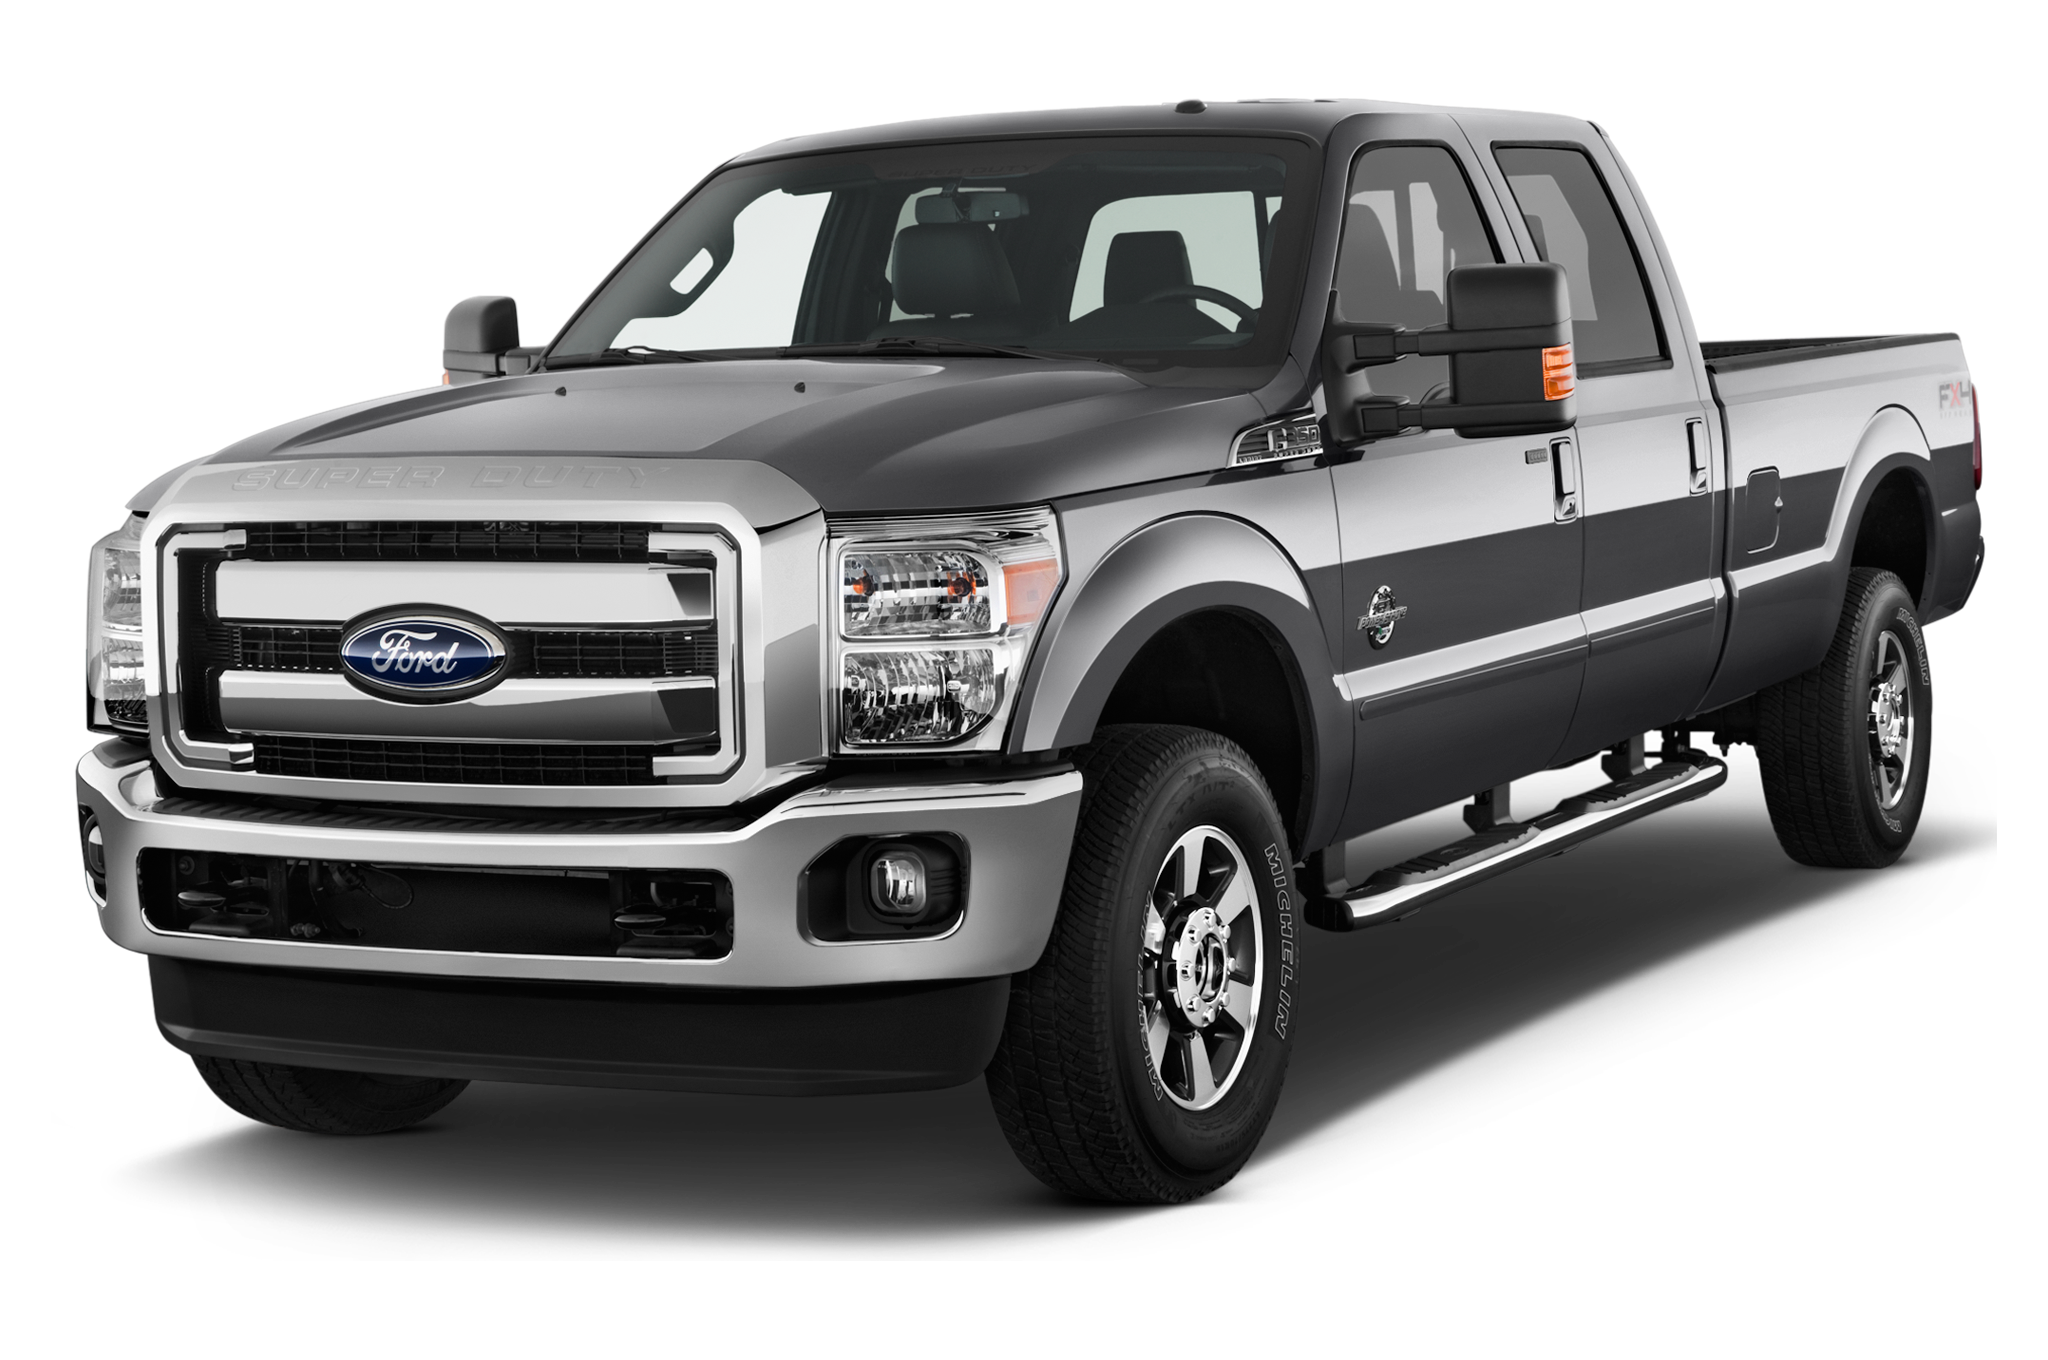 Ford F-350 Super Duty #20